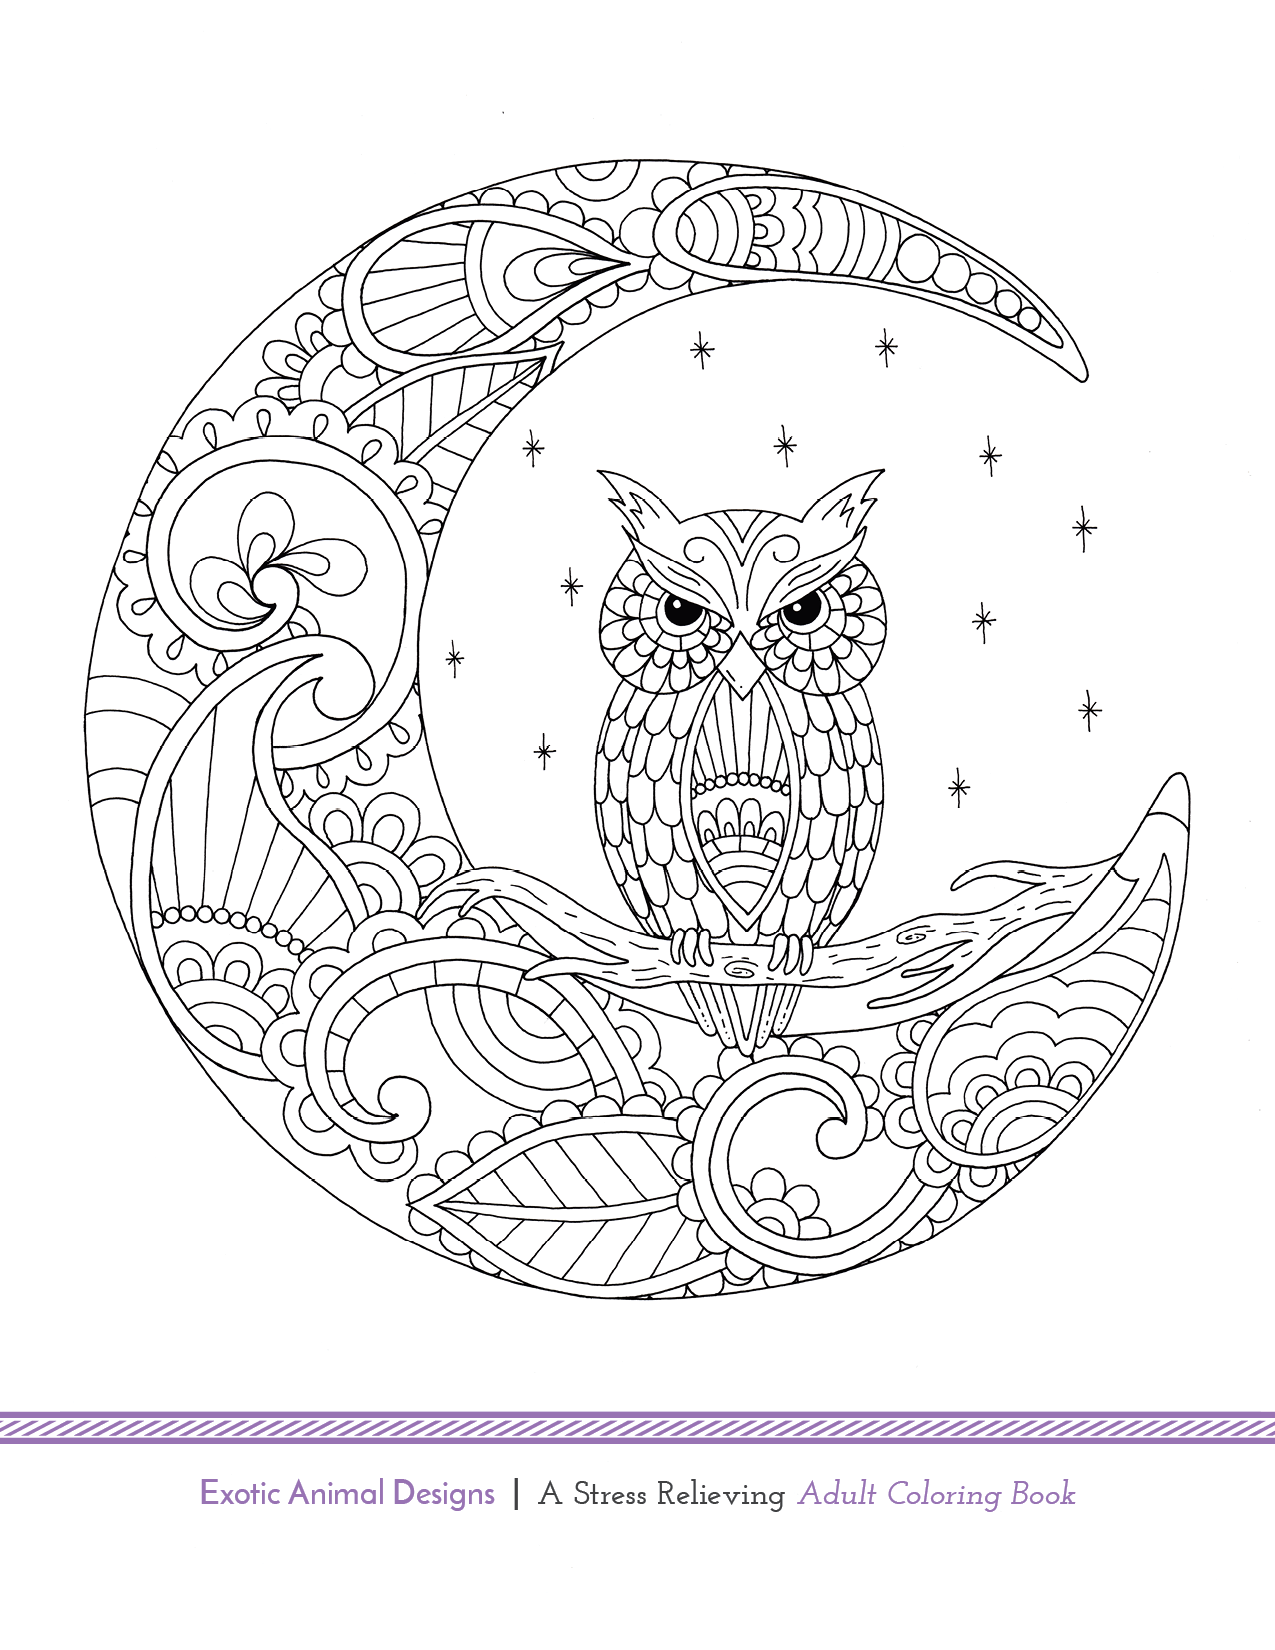 Blue Star Coloring Book Exotic Animal Designs By Artist Katie Packer Is Currently On